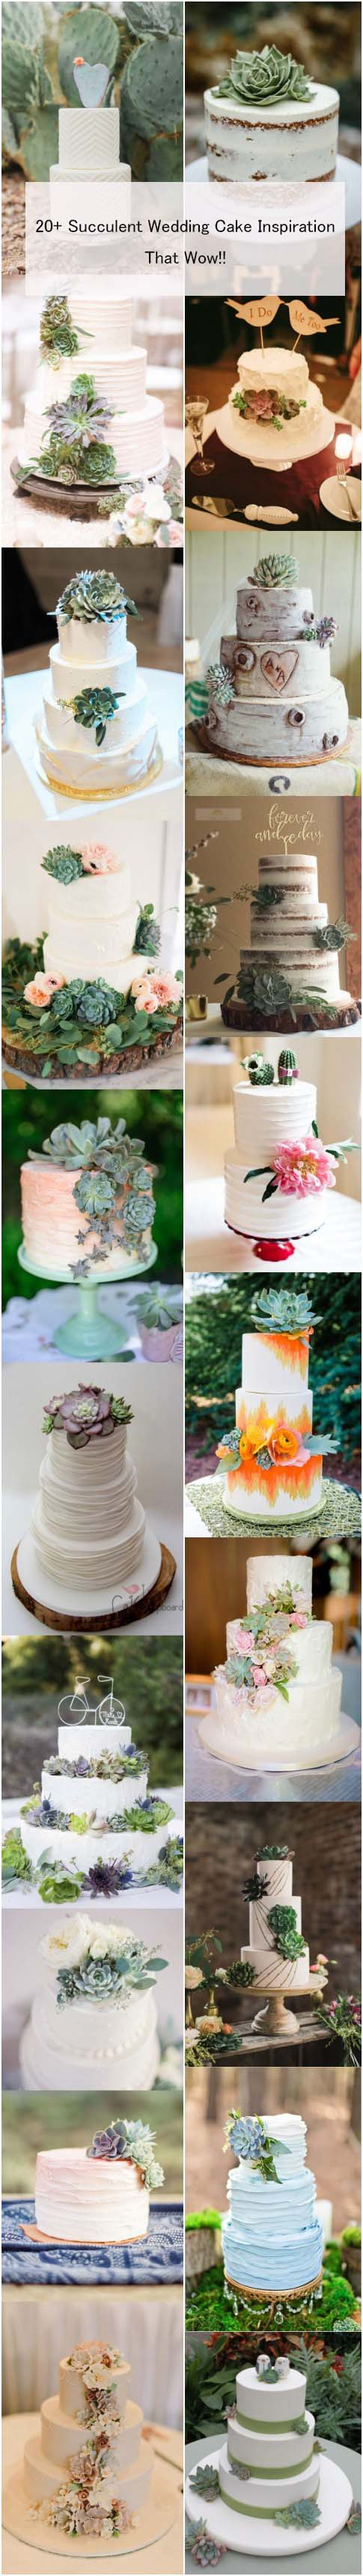 20+ Succulent Wedding Cake Inspiration That Wow at weddinginclude.com